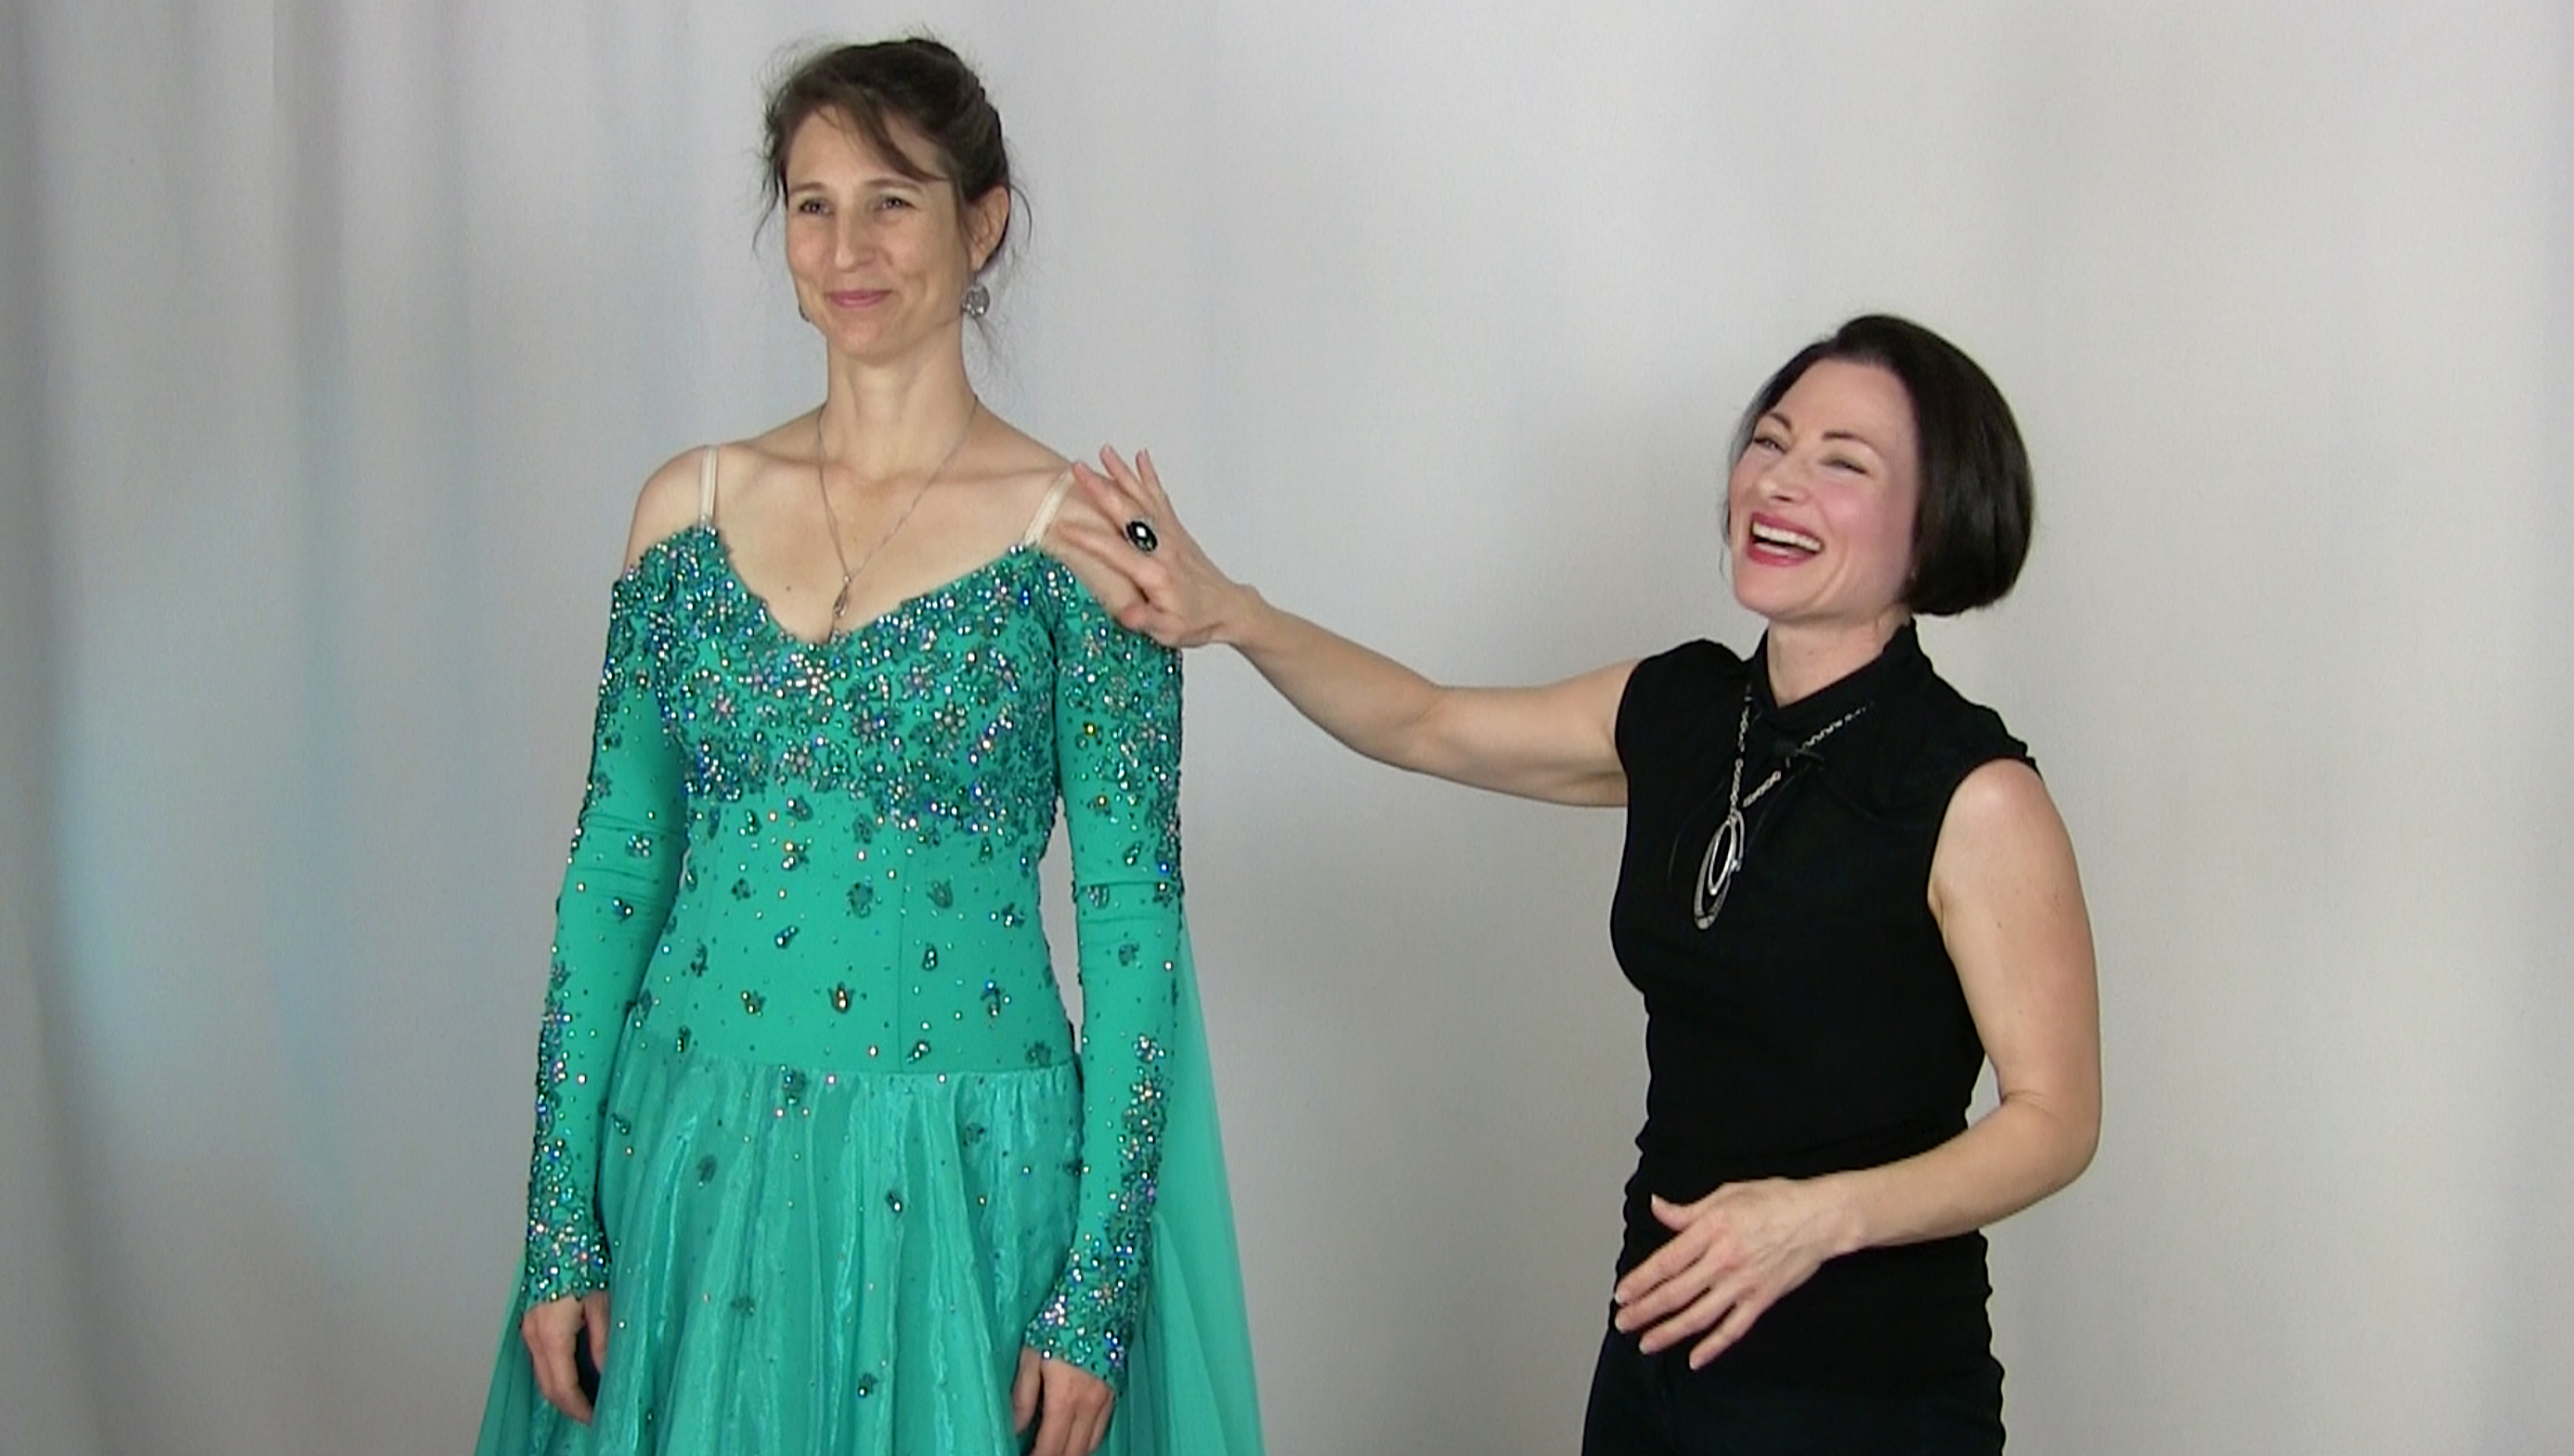 Weight loss alterations for Dancesport and Skate dresses